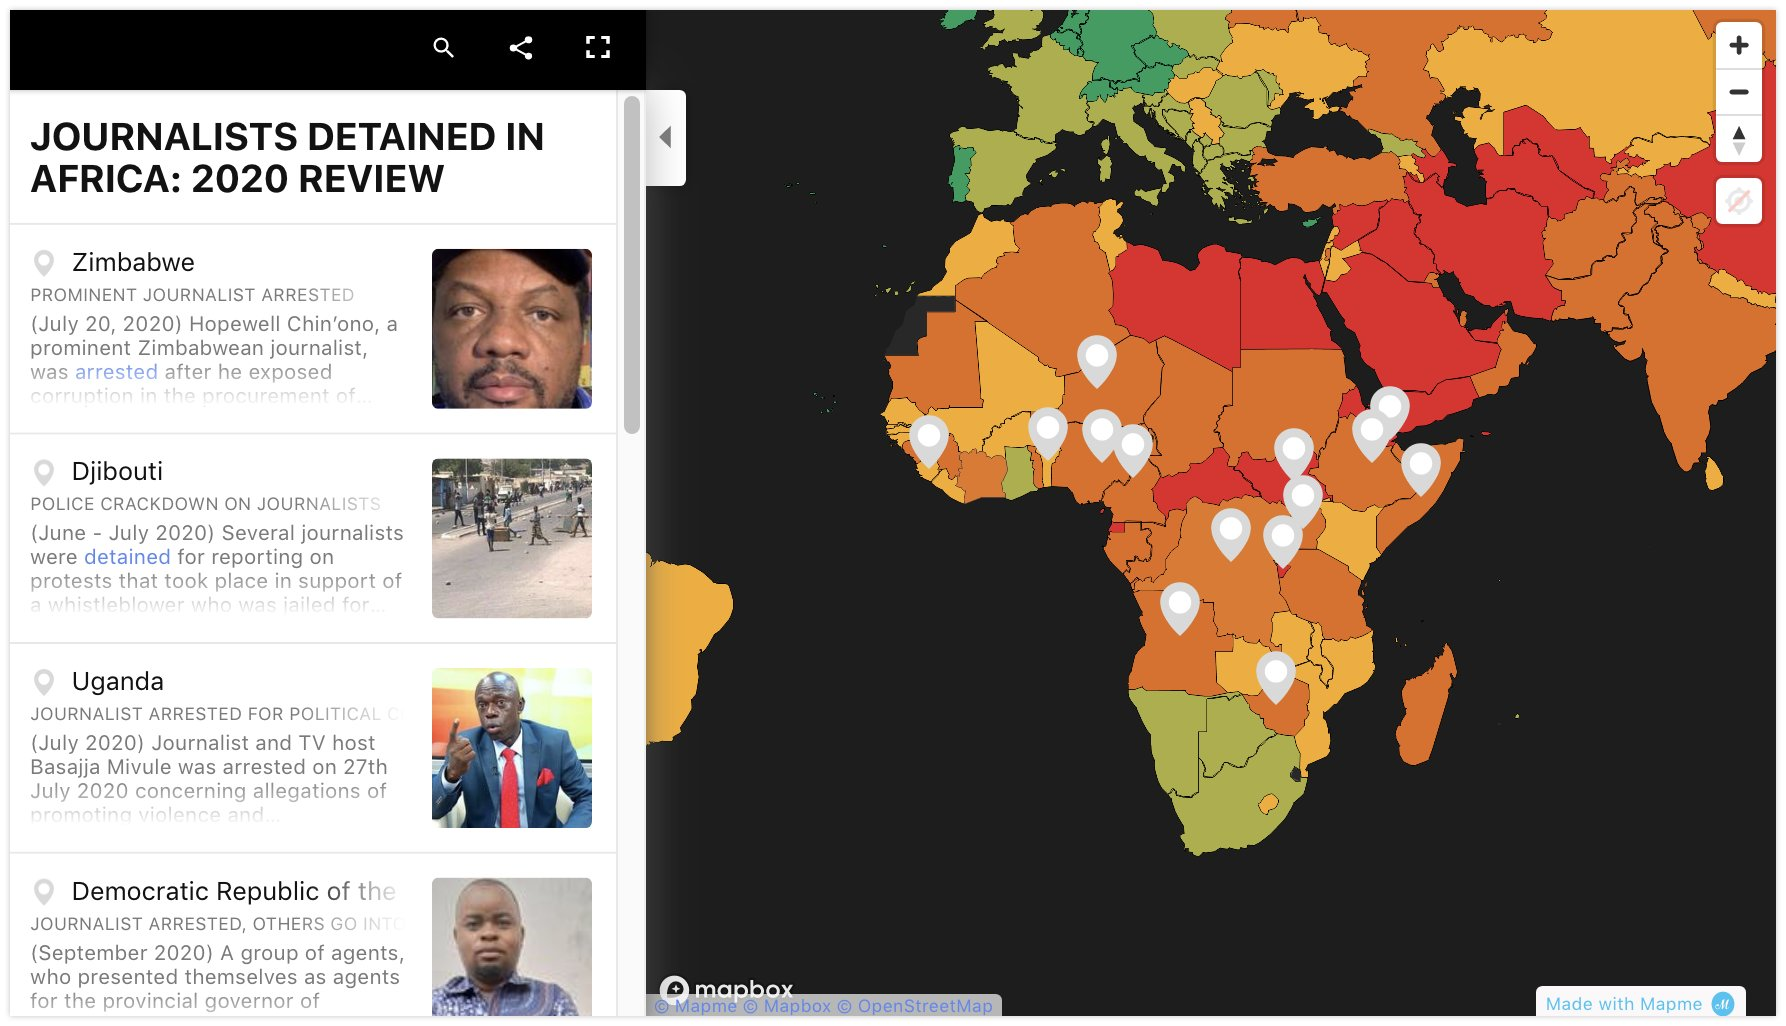 Africa: Fifty Journalists Killed in 2020